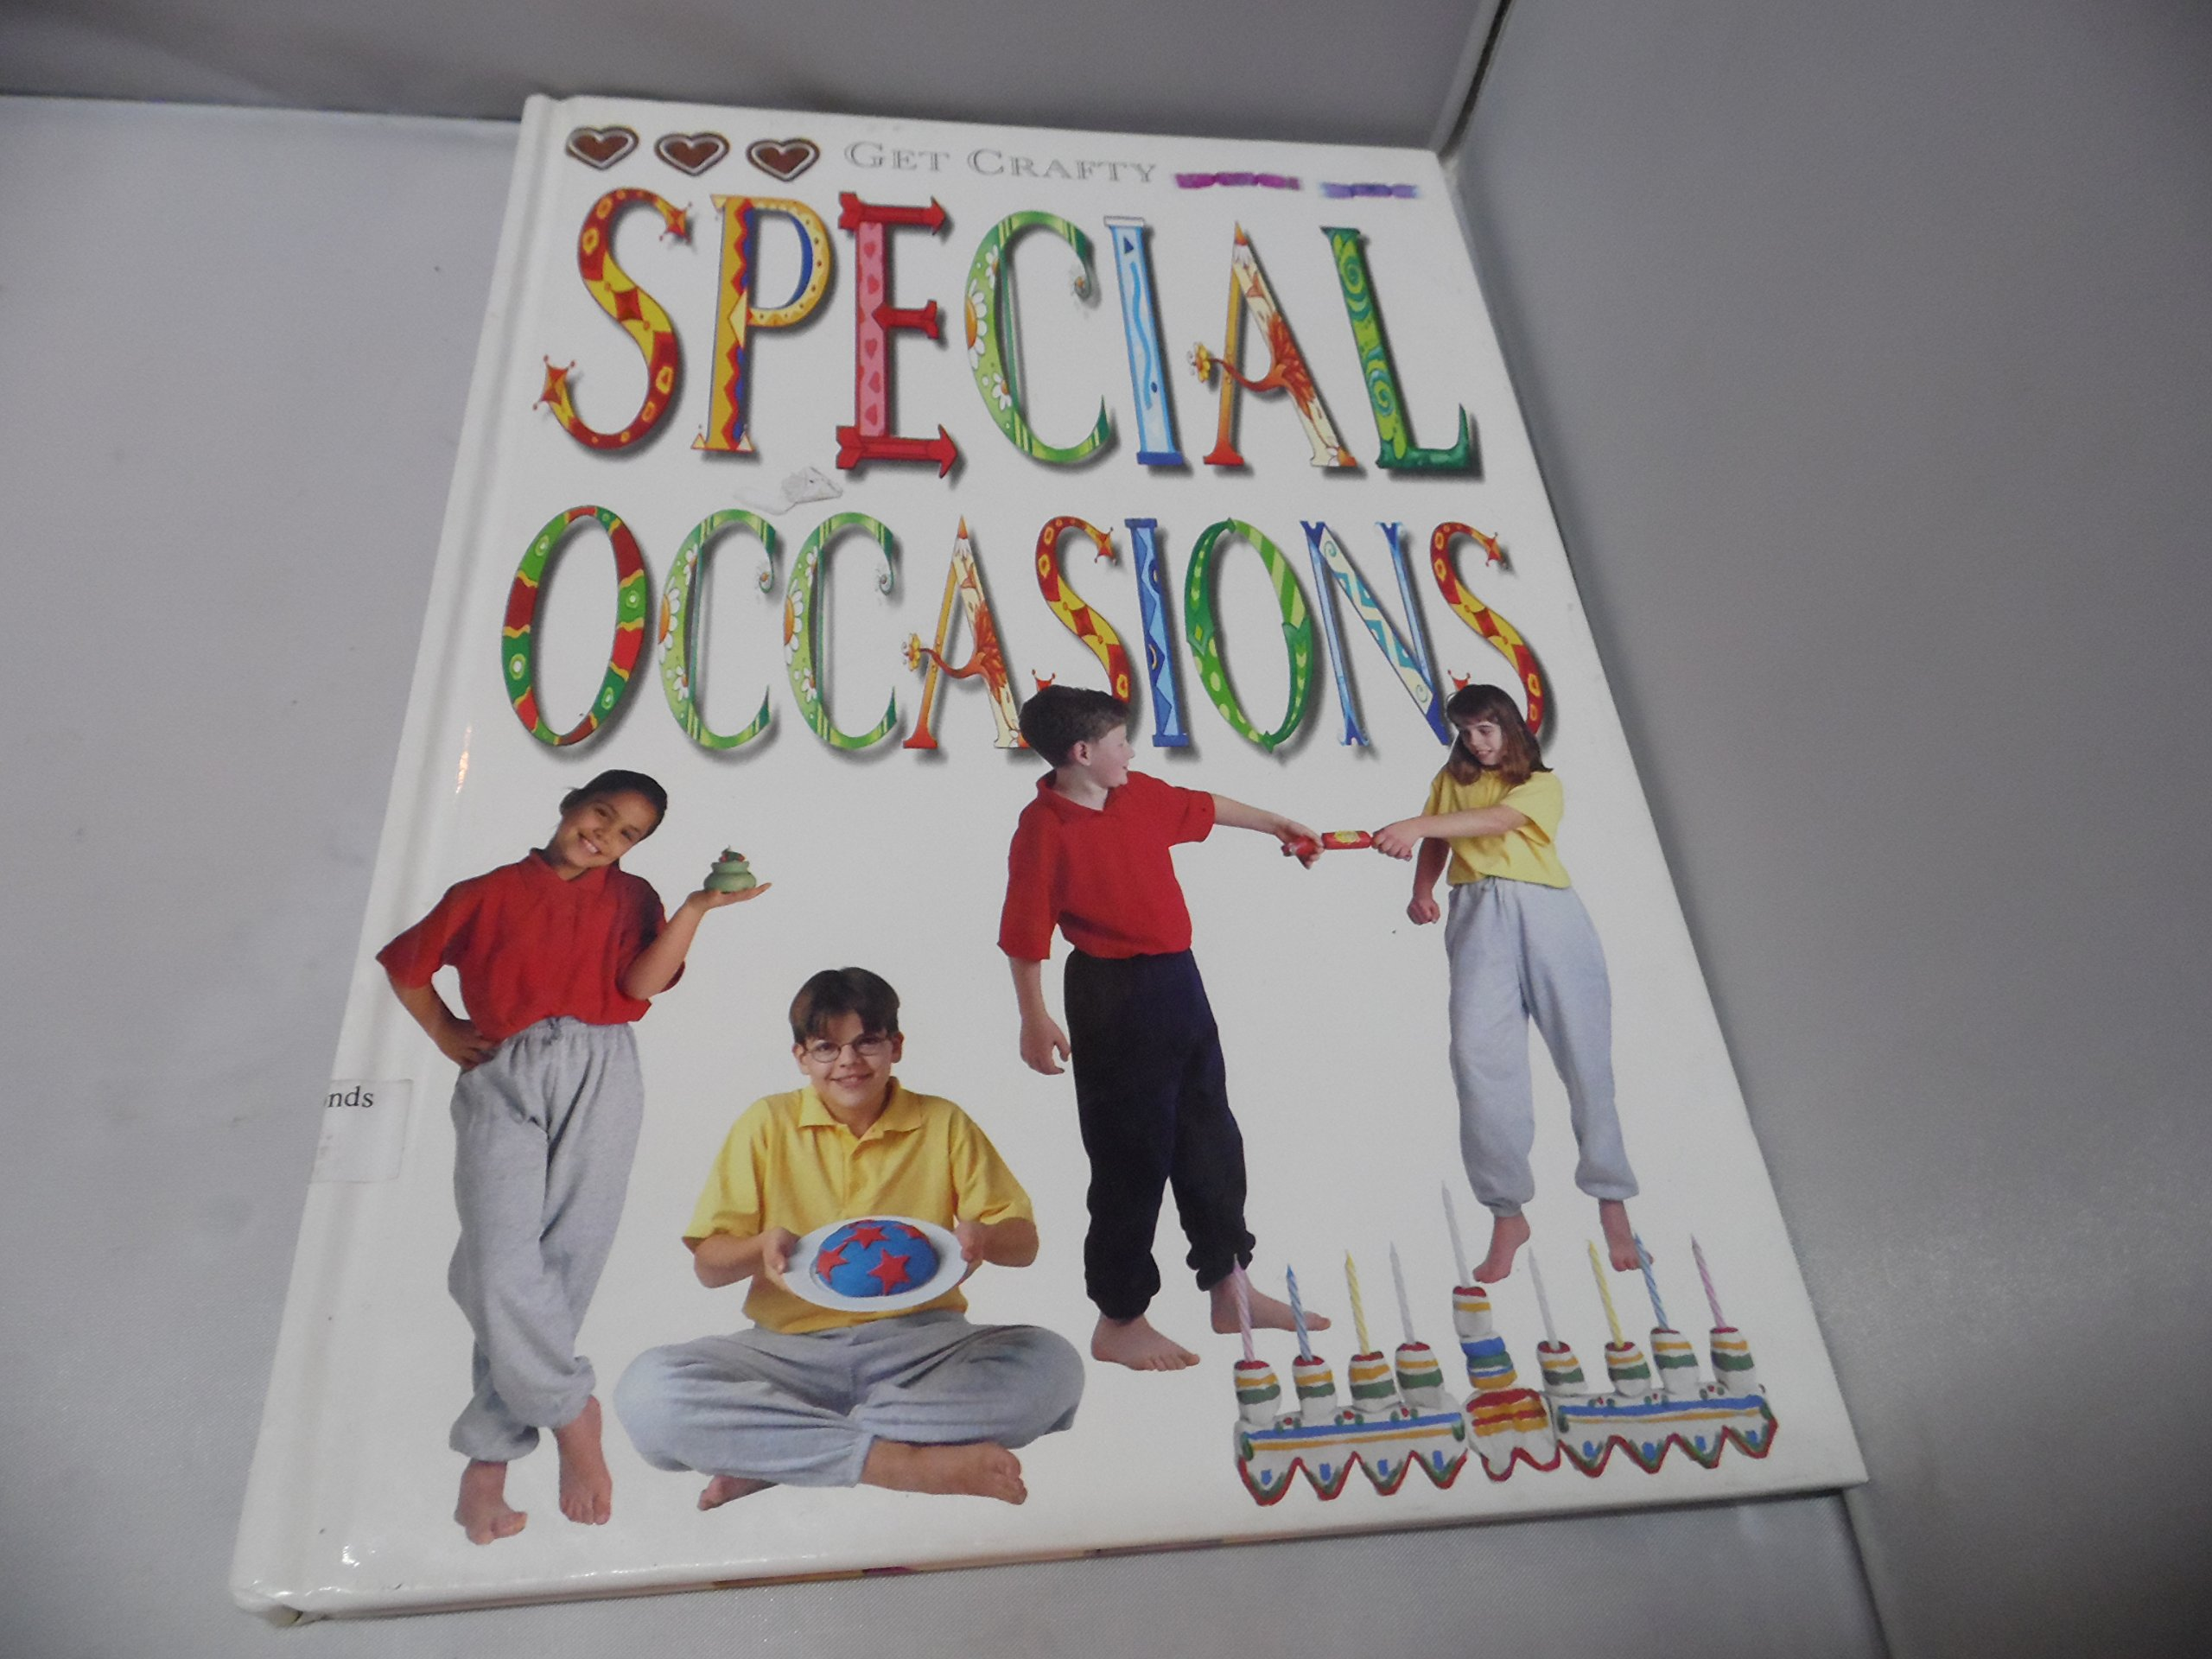 Special Occasions (Get Crafty)